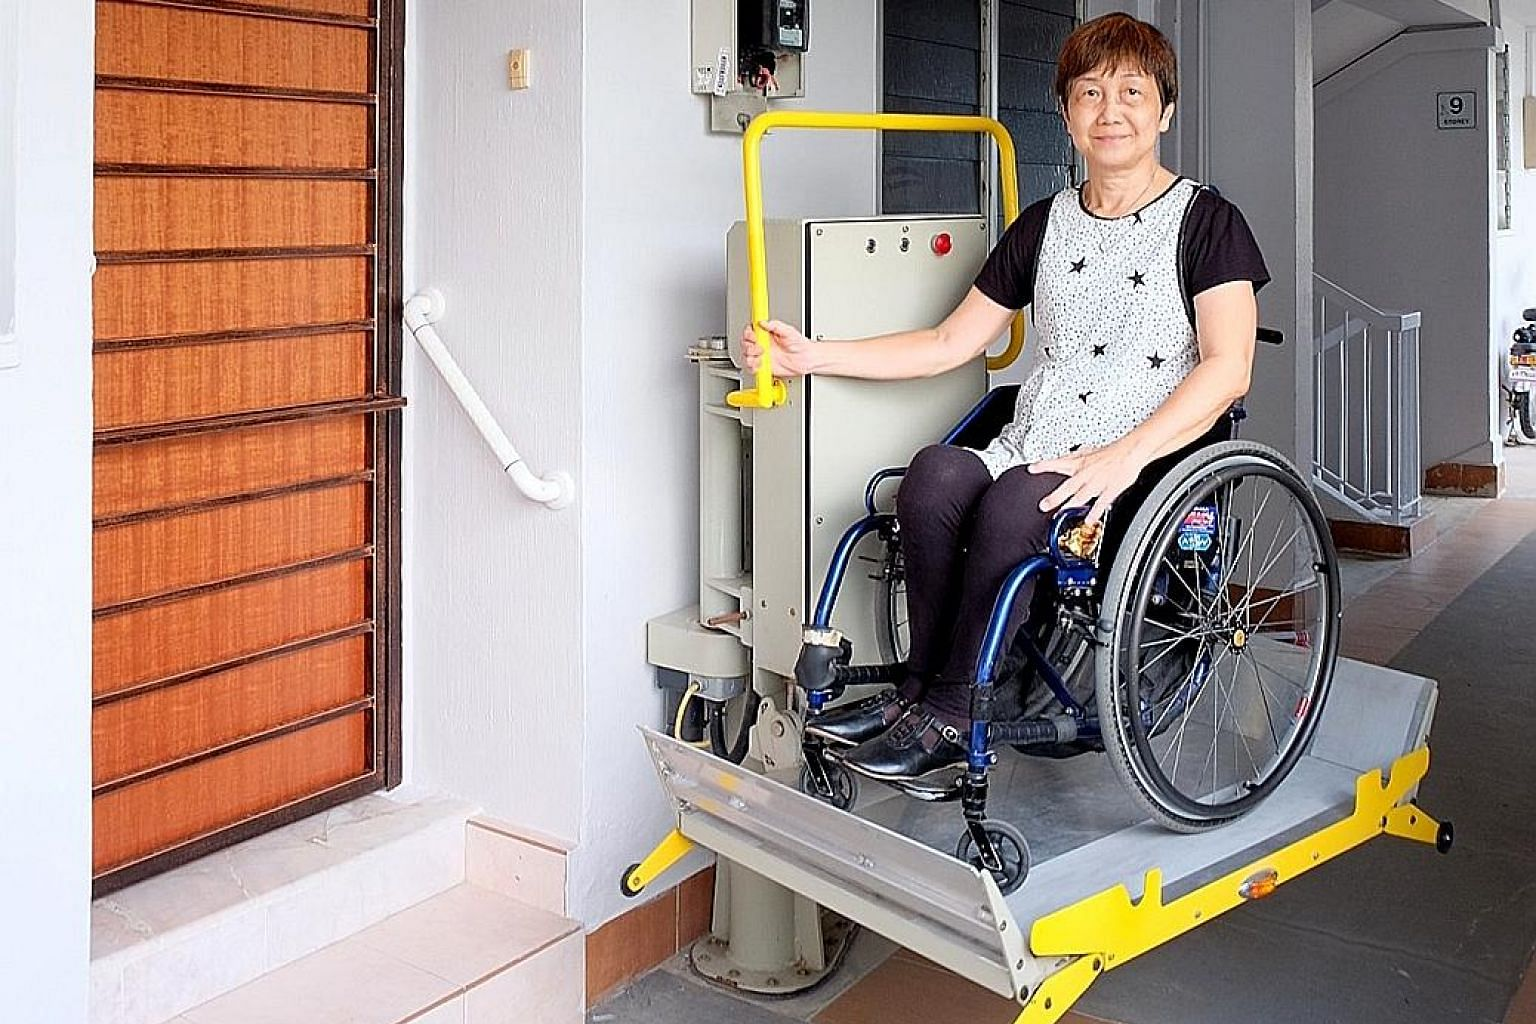 Retired administrative assistant Florence Tan was one of the first few to get a mechanical wheelchair lifter, as part of a test bed in 2015. It has made getting in and out of her flat, which has steps at the entrance, much easier.